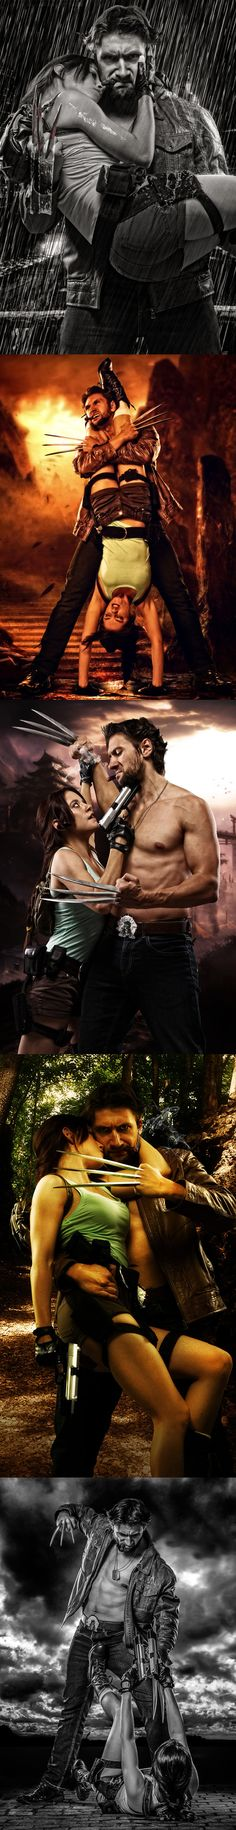 In the world of badass, this is the best mashup ever: Logan and Lara by howlettjames1981.deviantart.com/